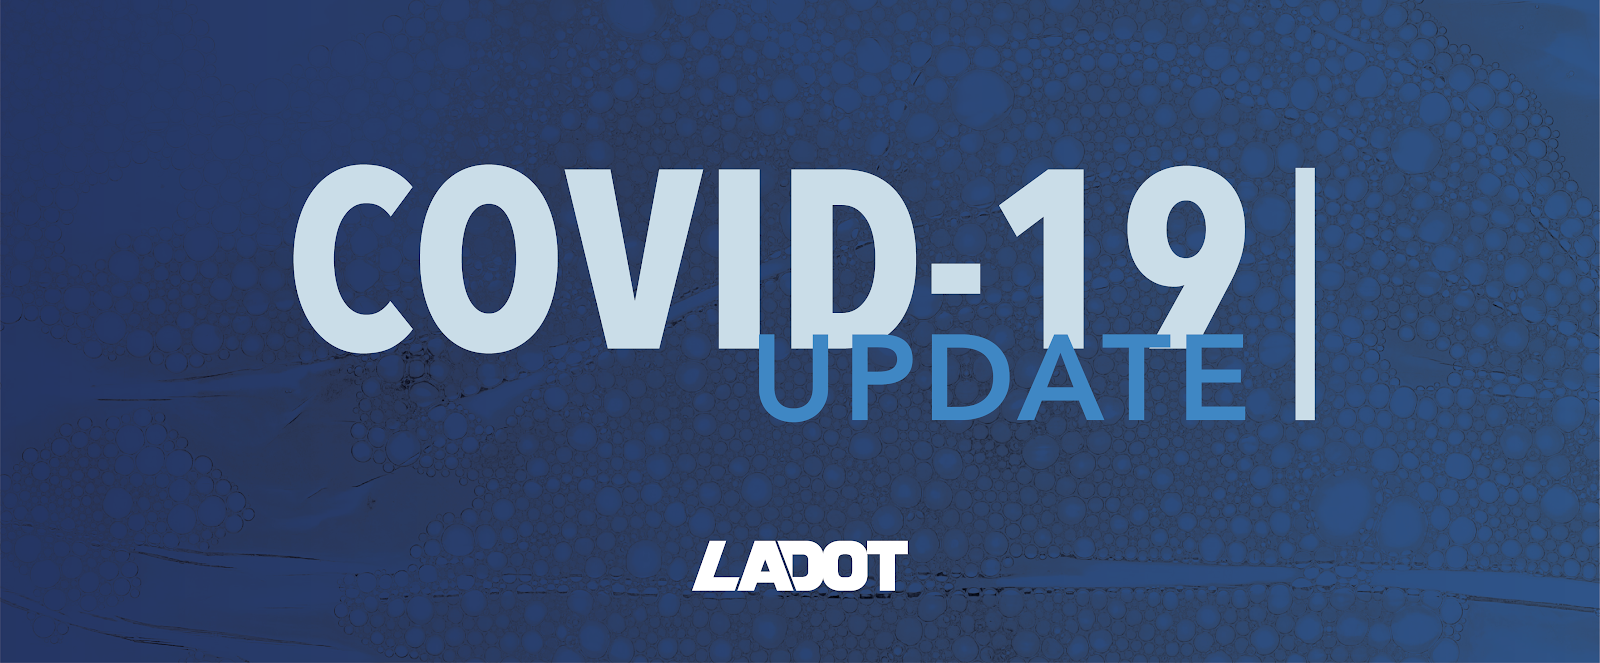 LADOT COVID-19 Update Header